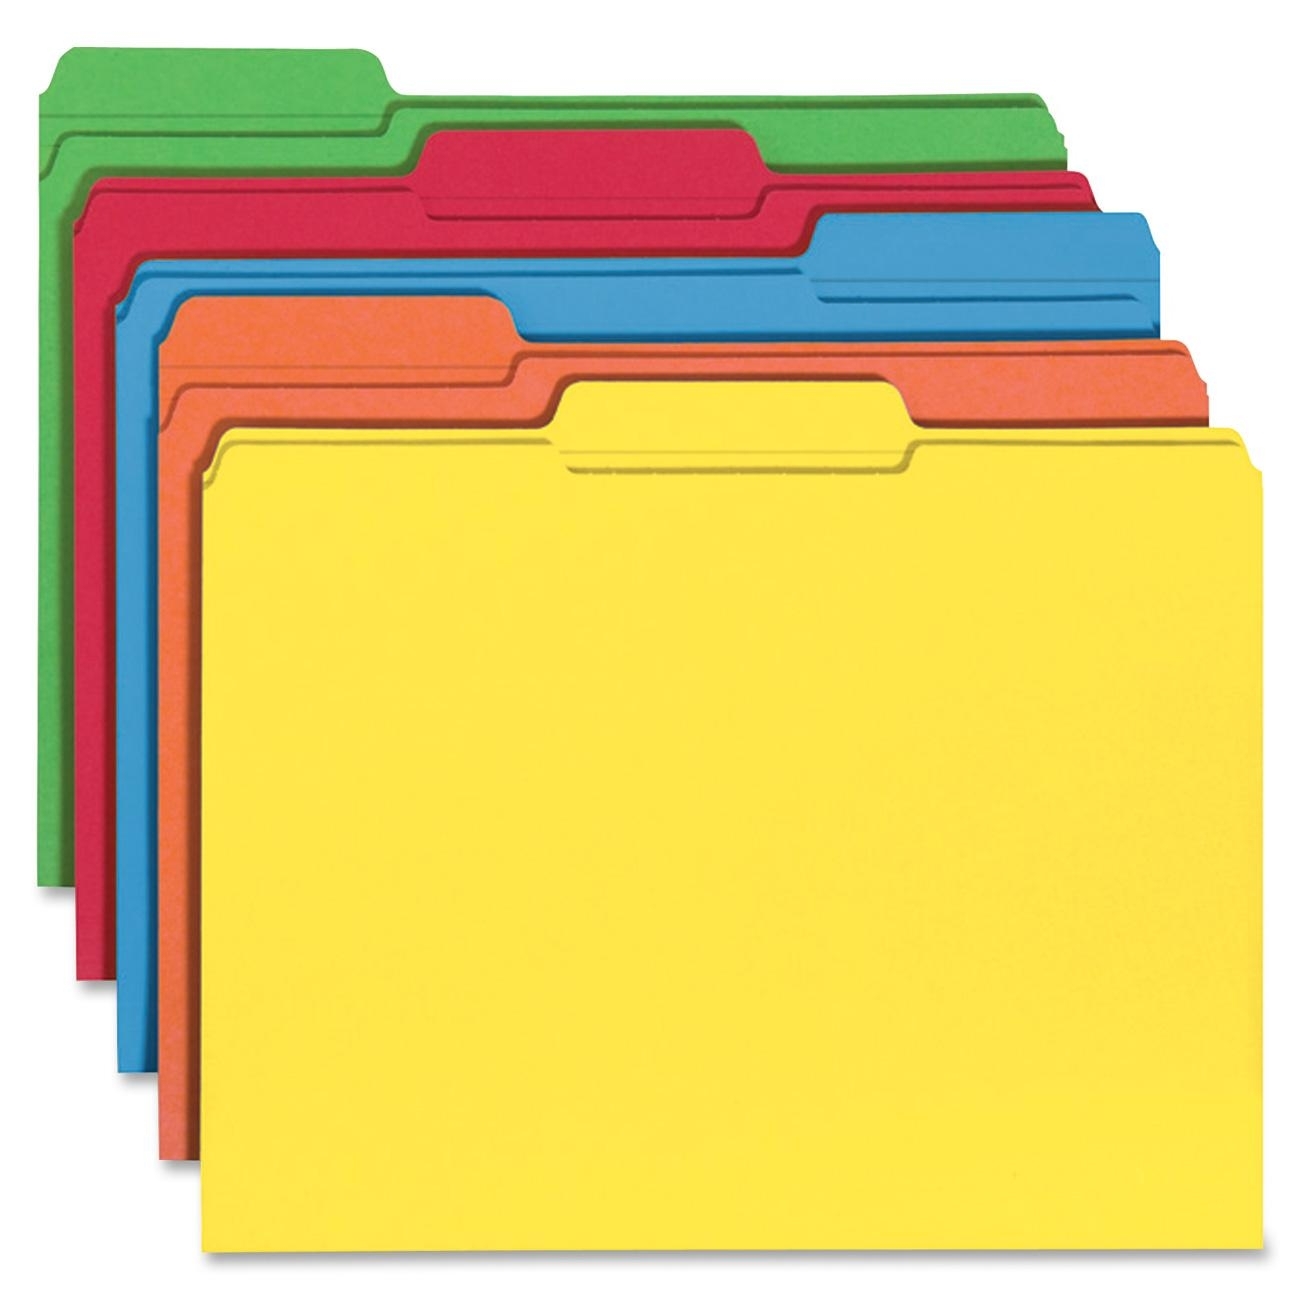 Organizing Your Home Records. Organizing-Organizing Your Home Records. Organizing Your Home Records. Pocket Folder Clipart ...-10